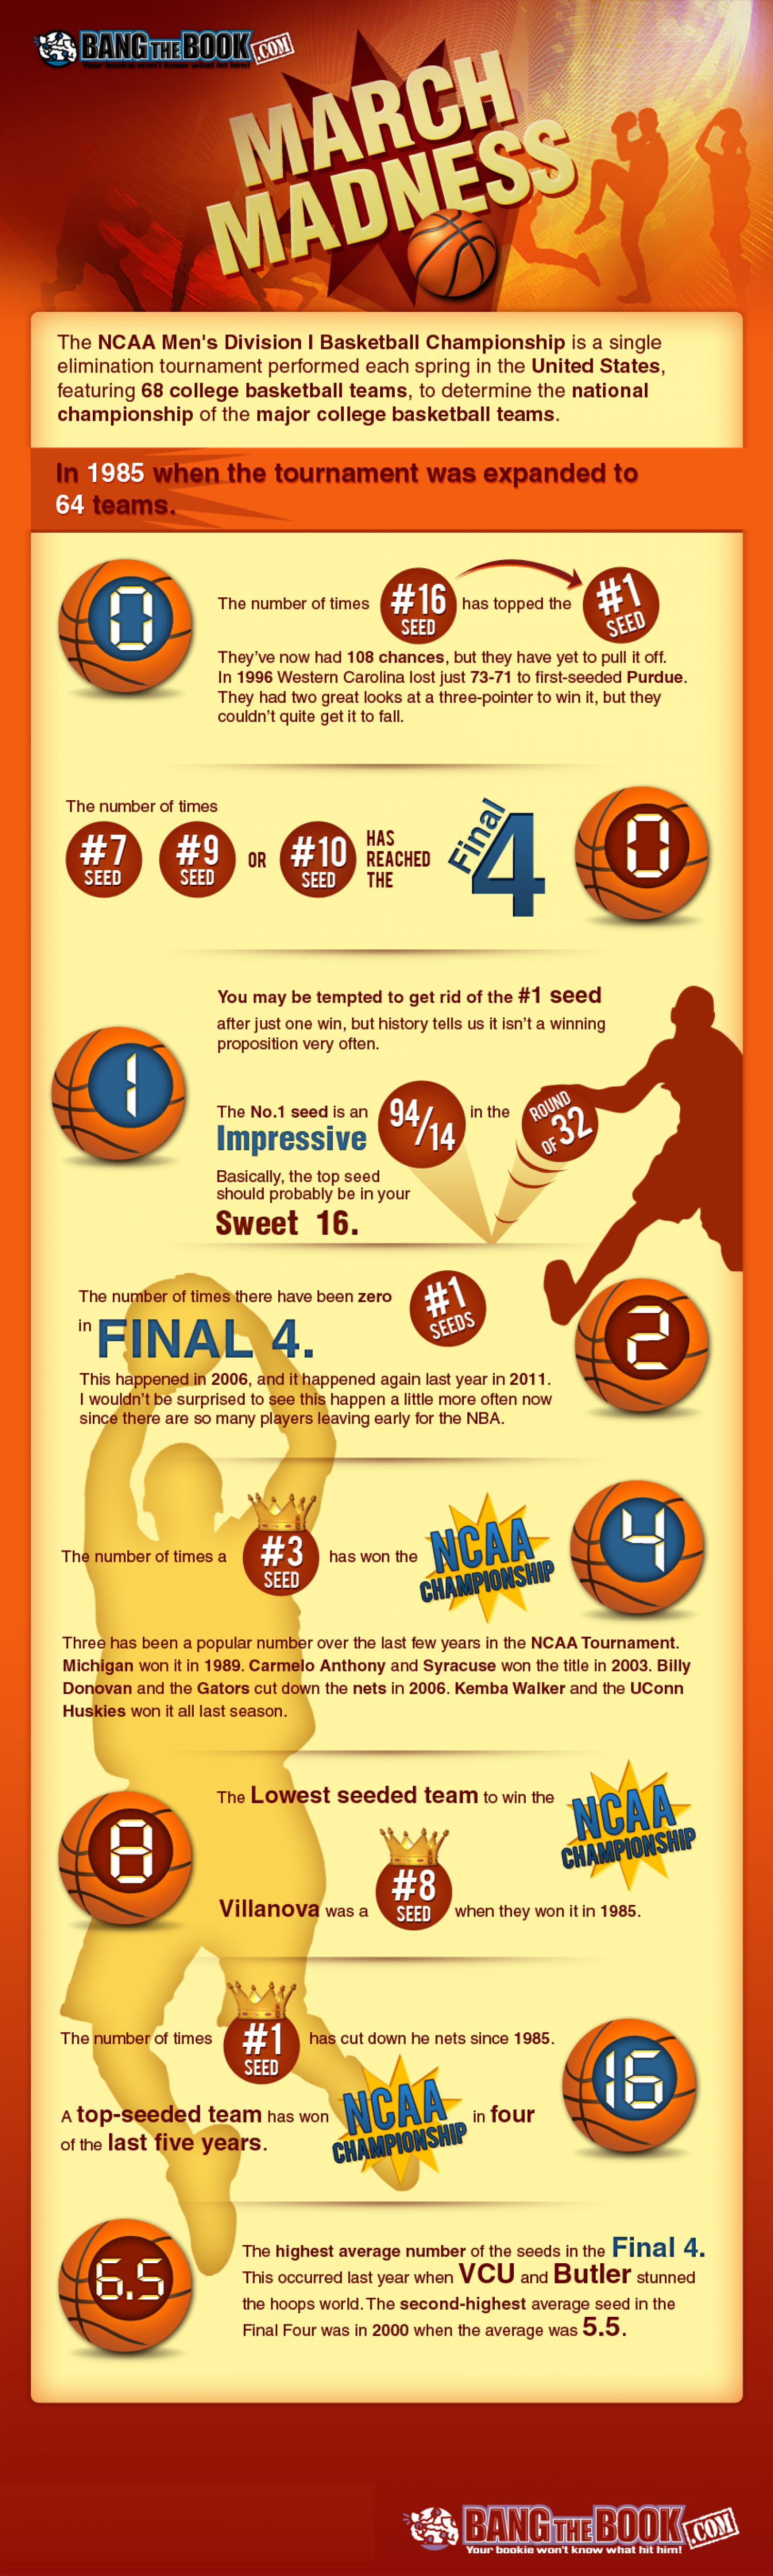 NCAA Tournament Bracket Information Infographic